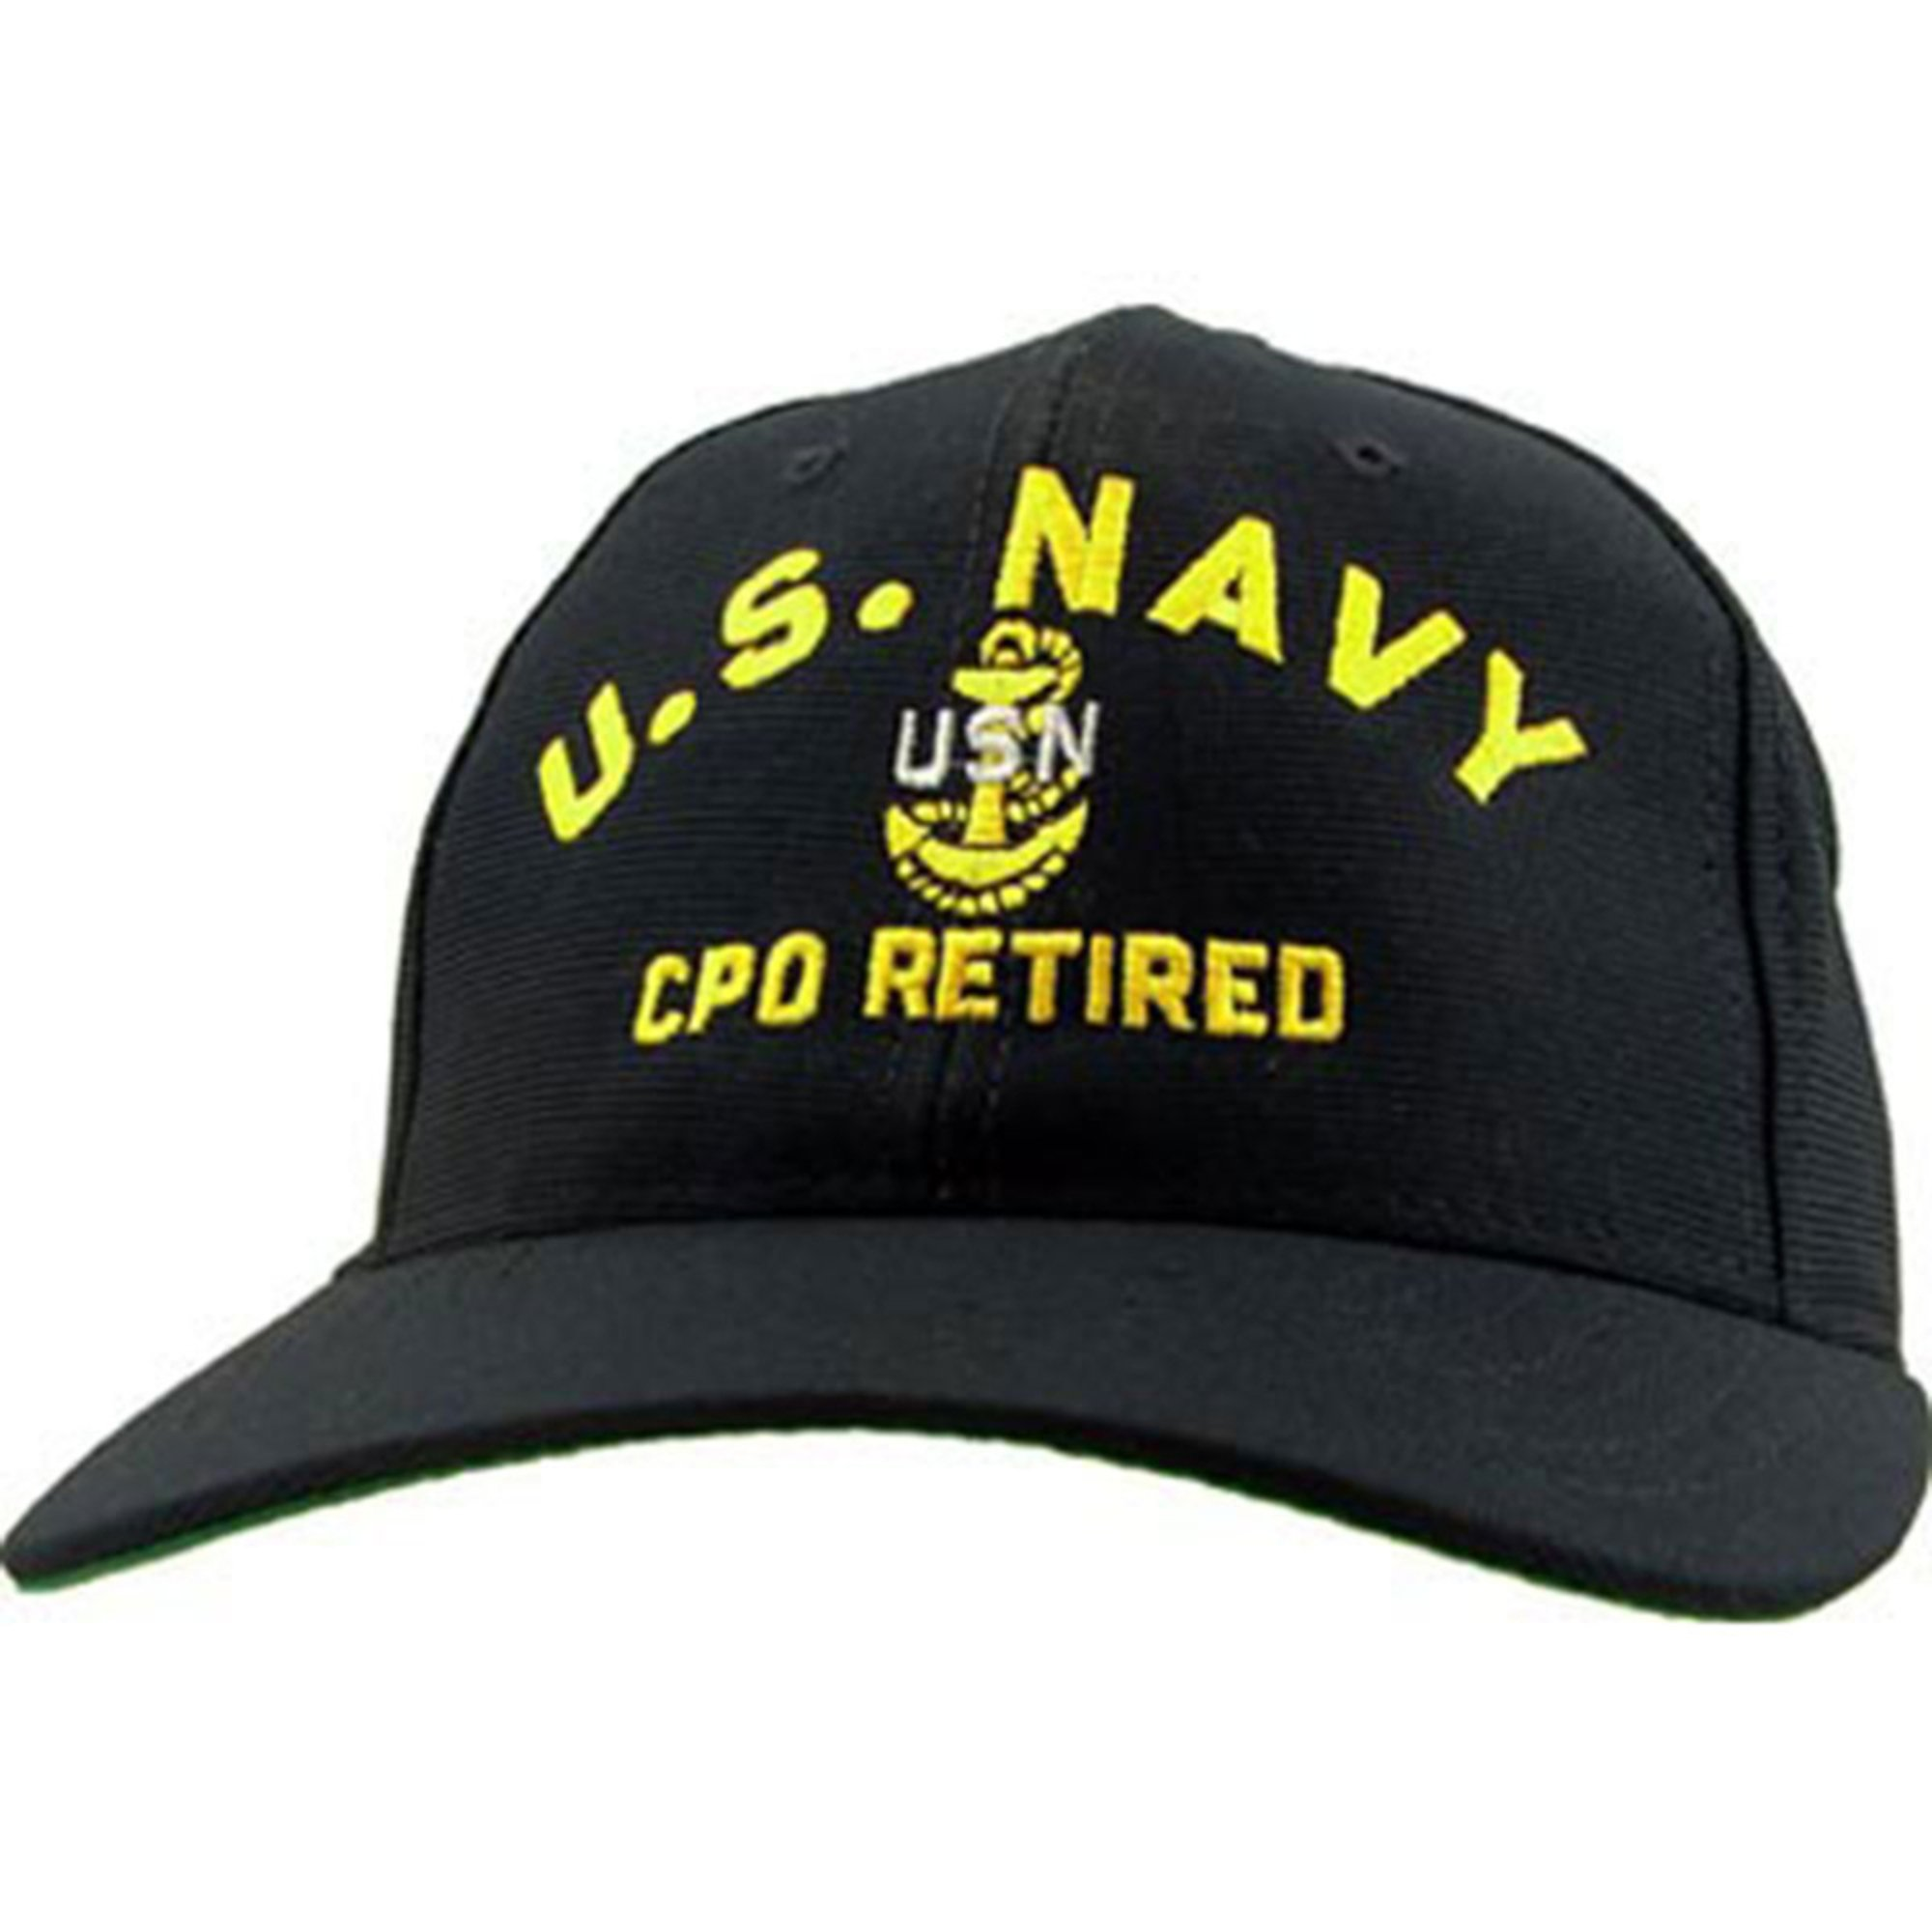 a42d7cf6eed Eagle Crest. Eagle Crest USN Chief Petty Officer Retired Hat